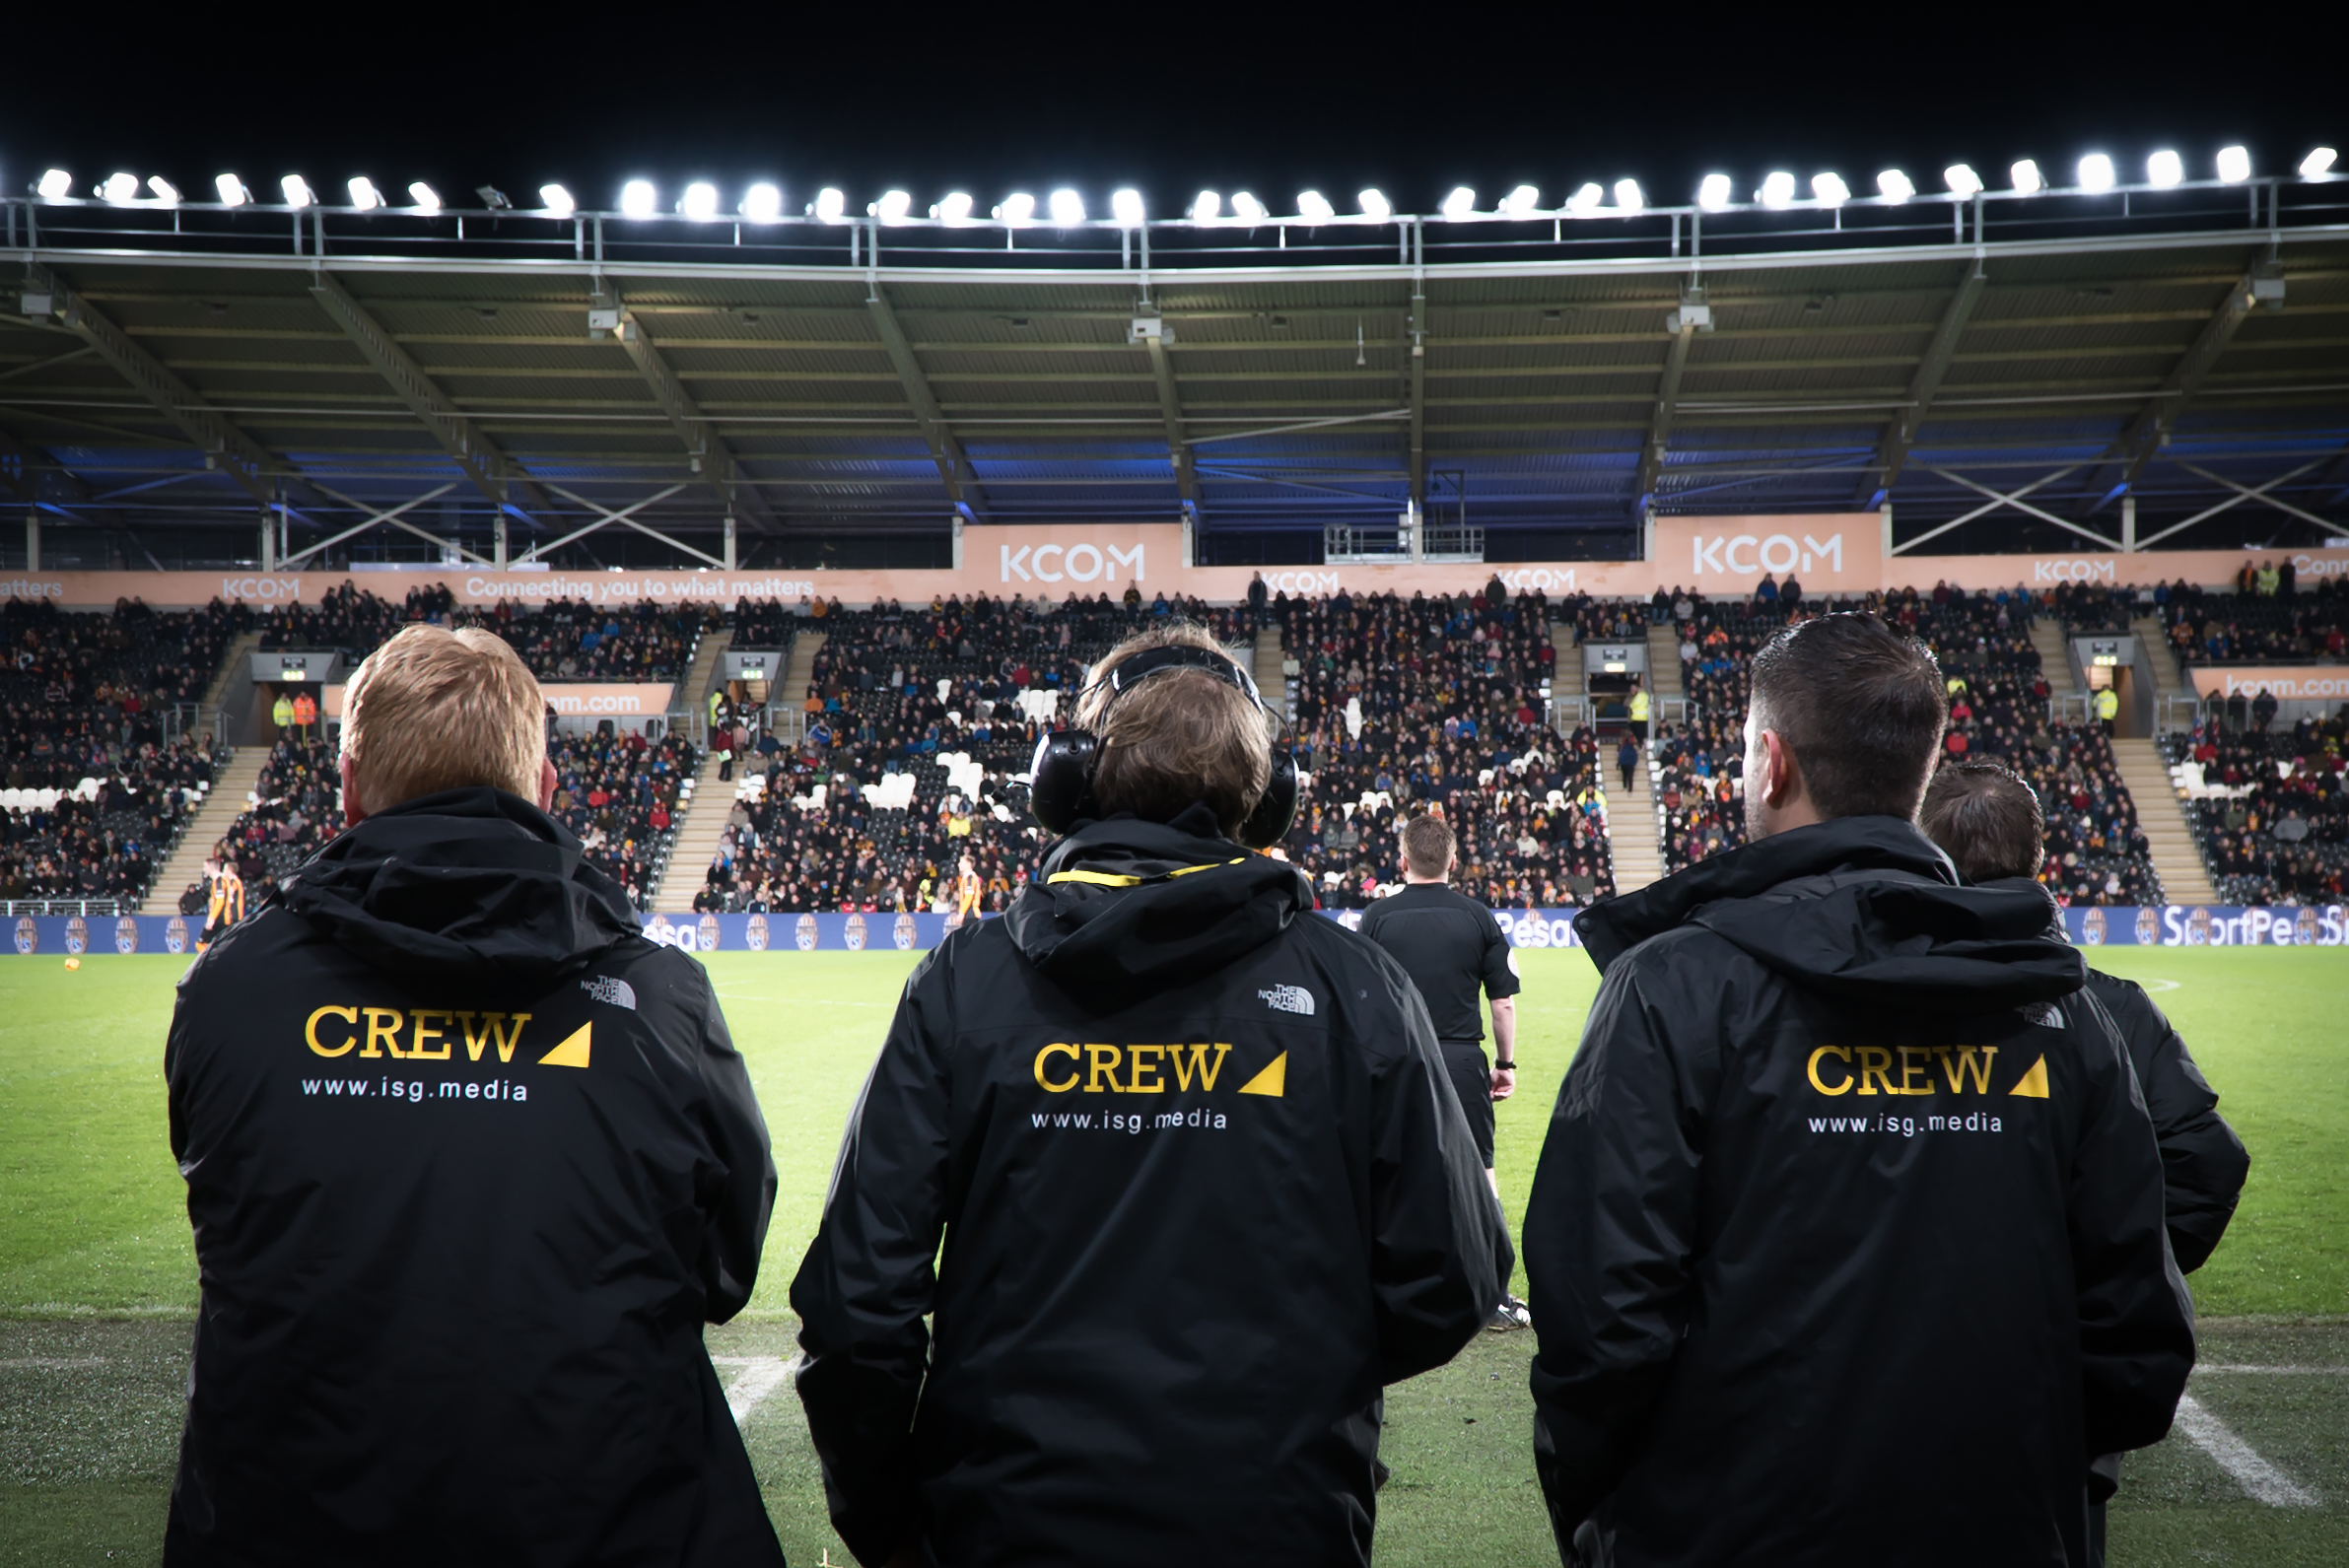 ISG awarded production contract for Hull City  friendly against shirt sponsor SportPesa Featured Image